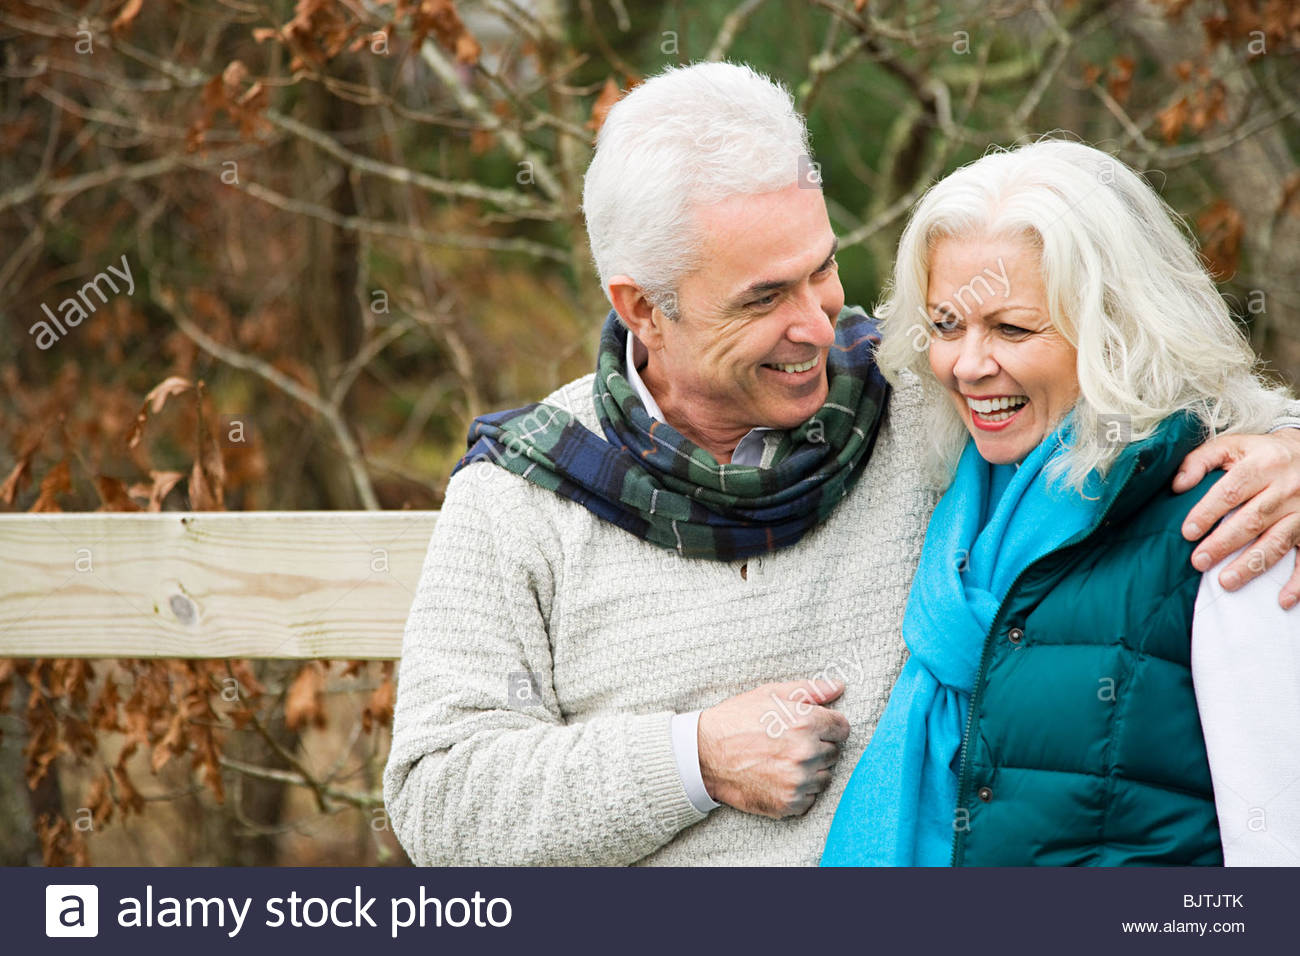 No Credit Card Best Seniors Dating Online Services